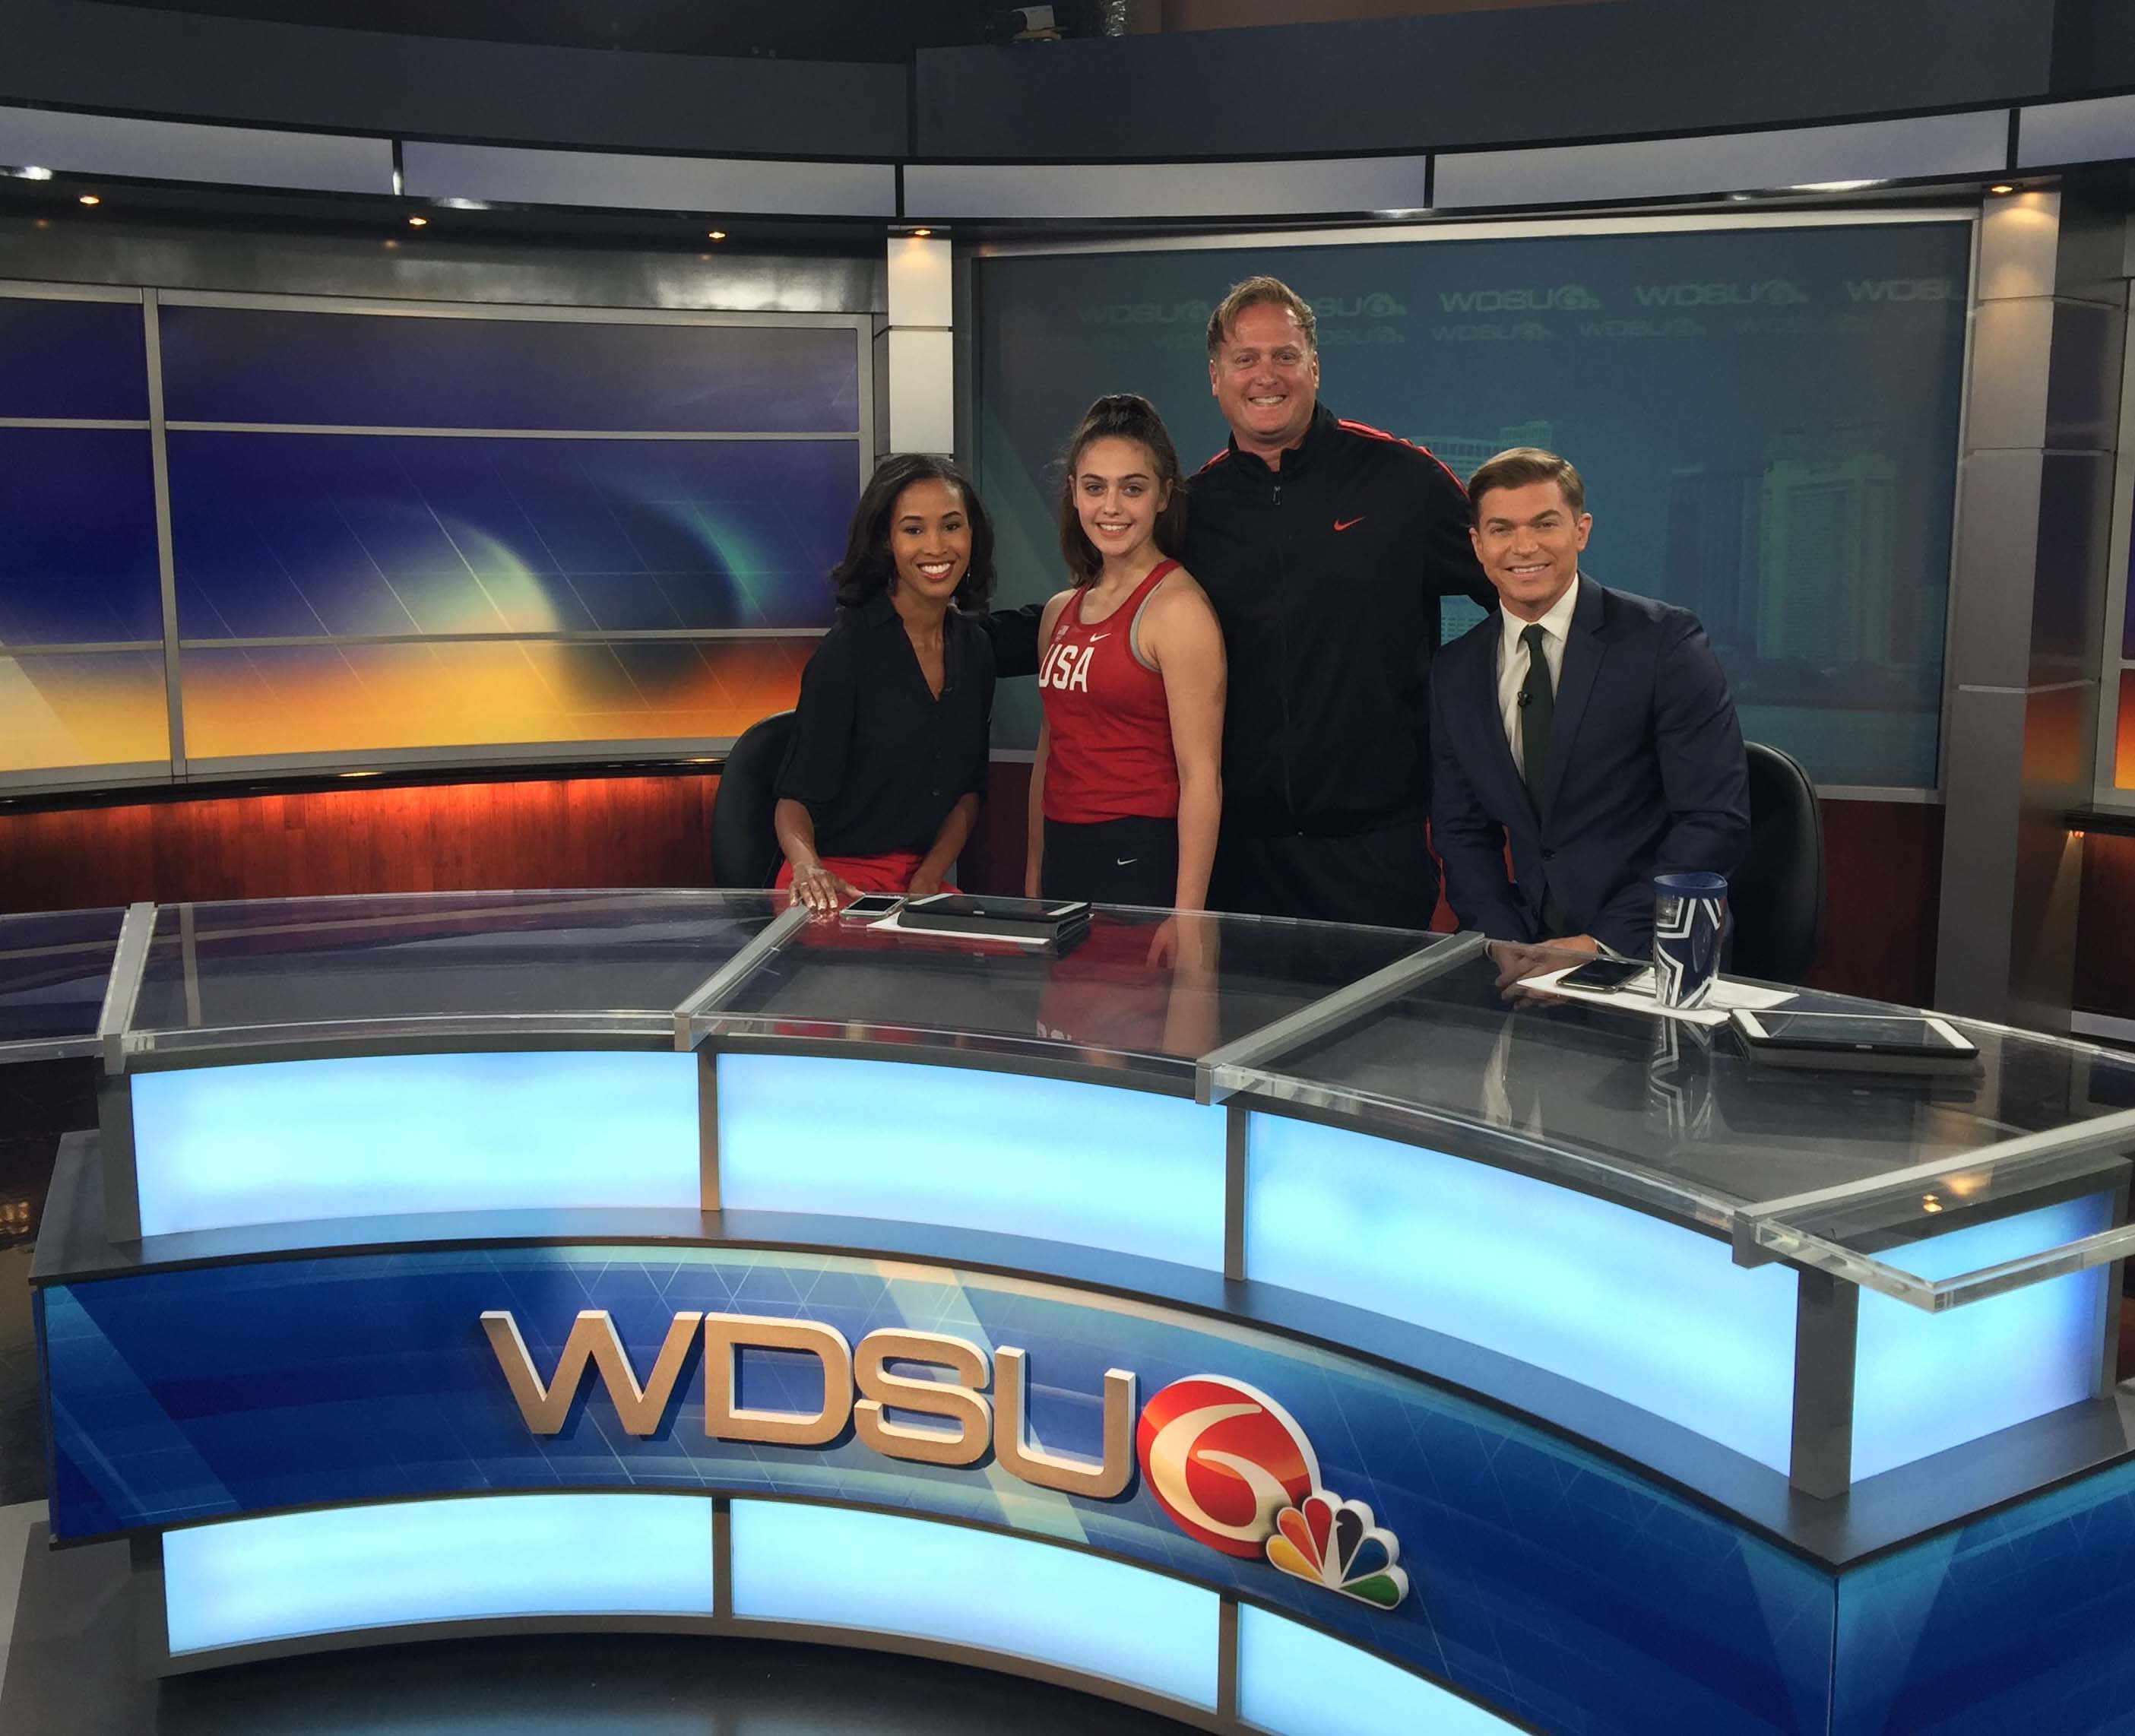 USA Team Member Alexis Lavarine with WSDU News Team